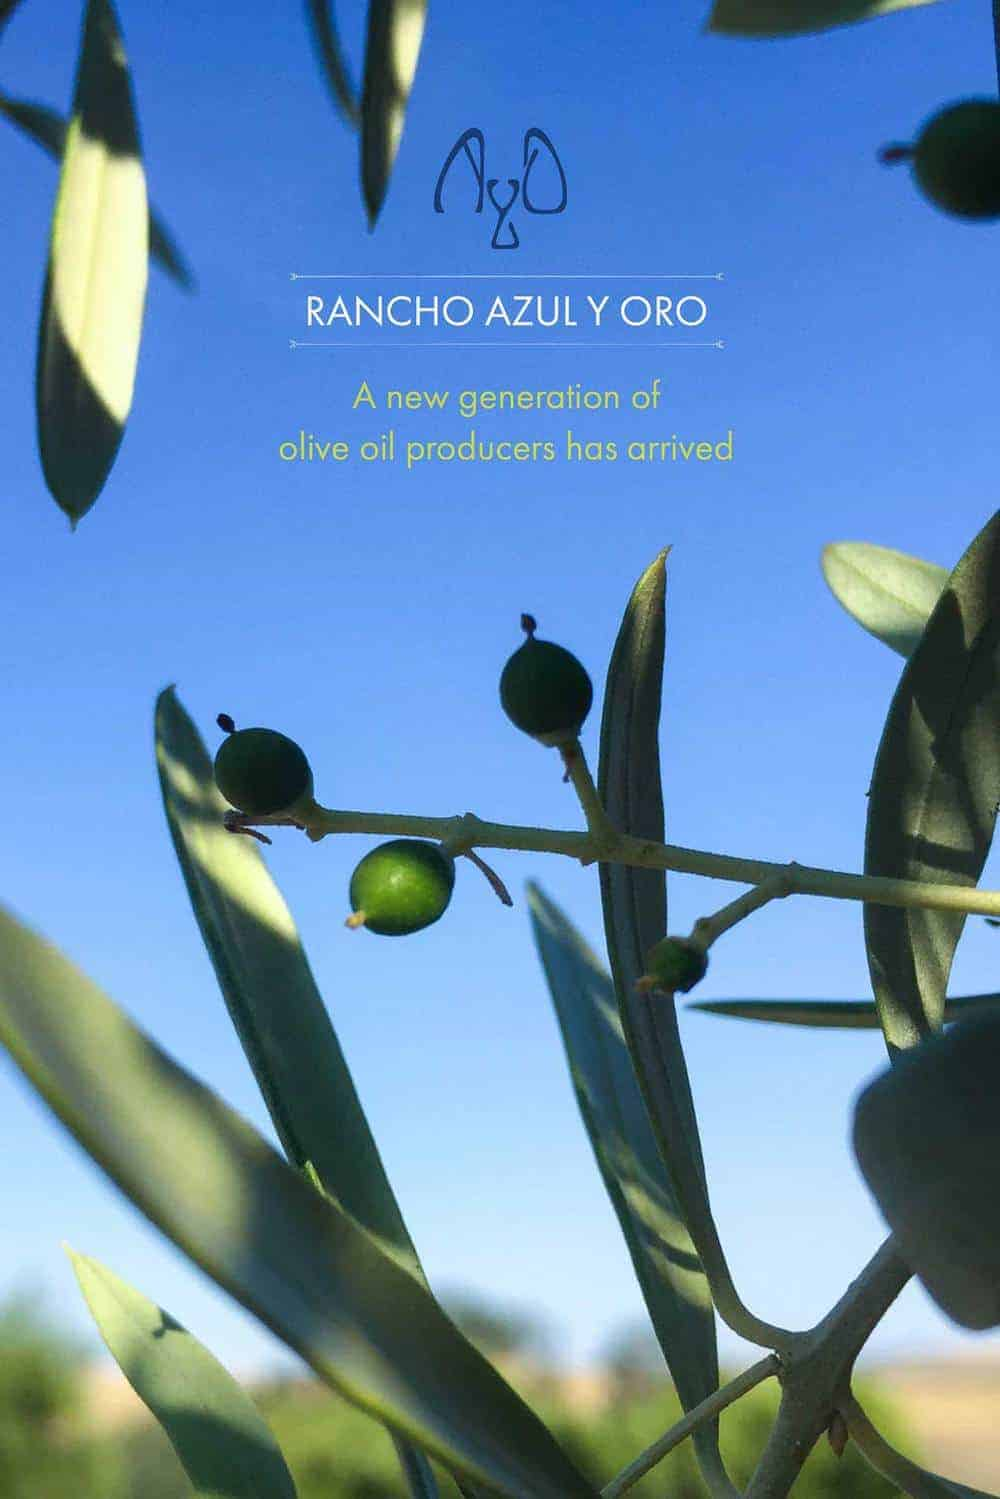 Rancho Azul y Oro feature story